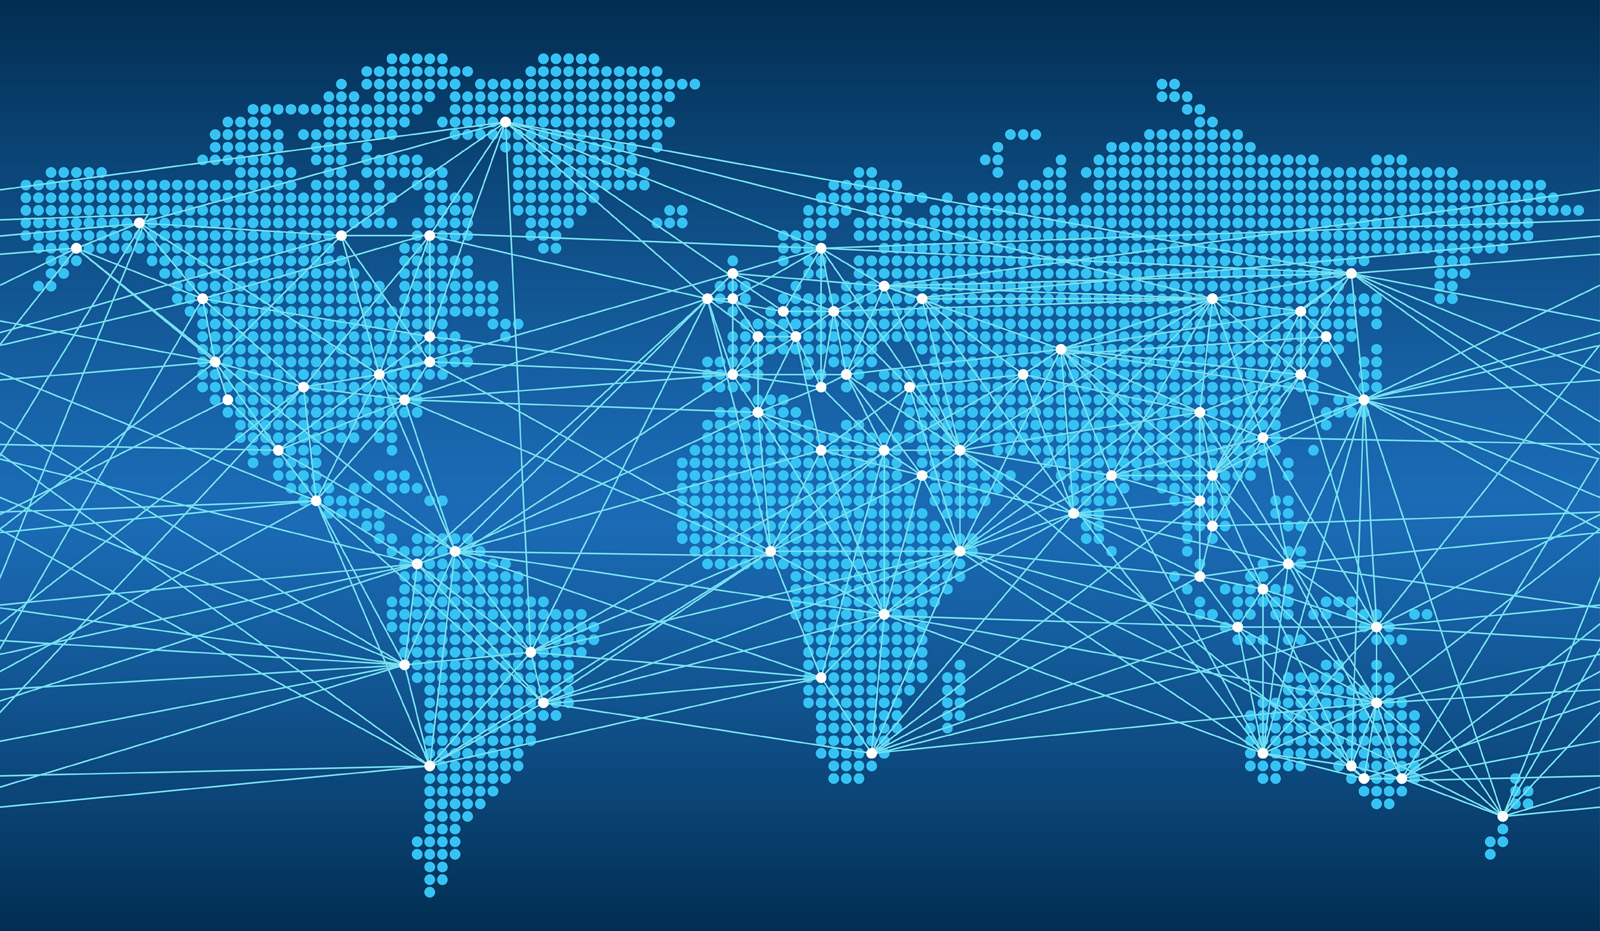 Seamless Map Of The Global Network System Download Free